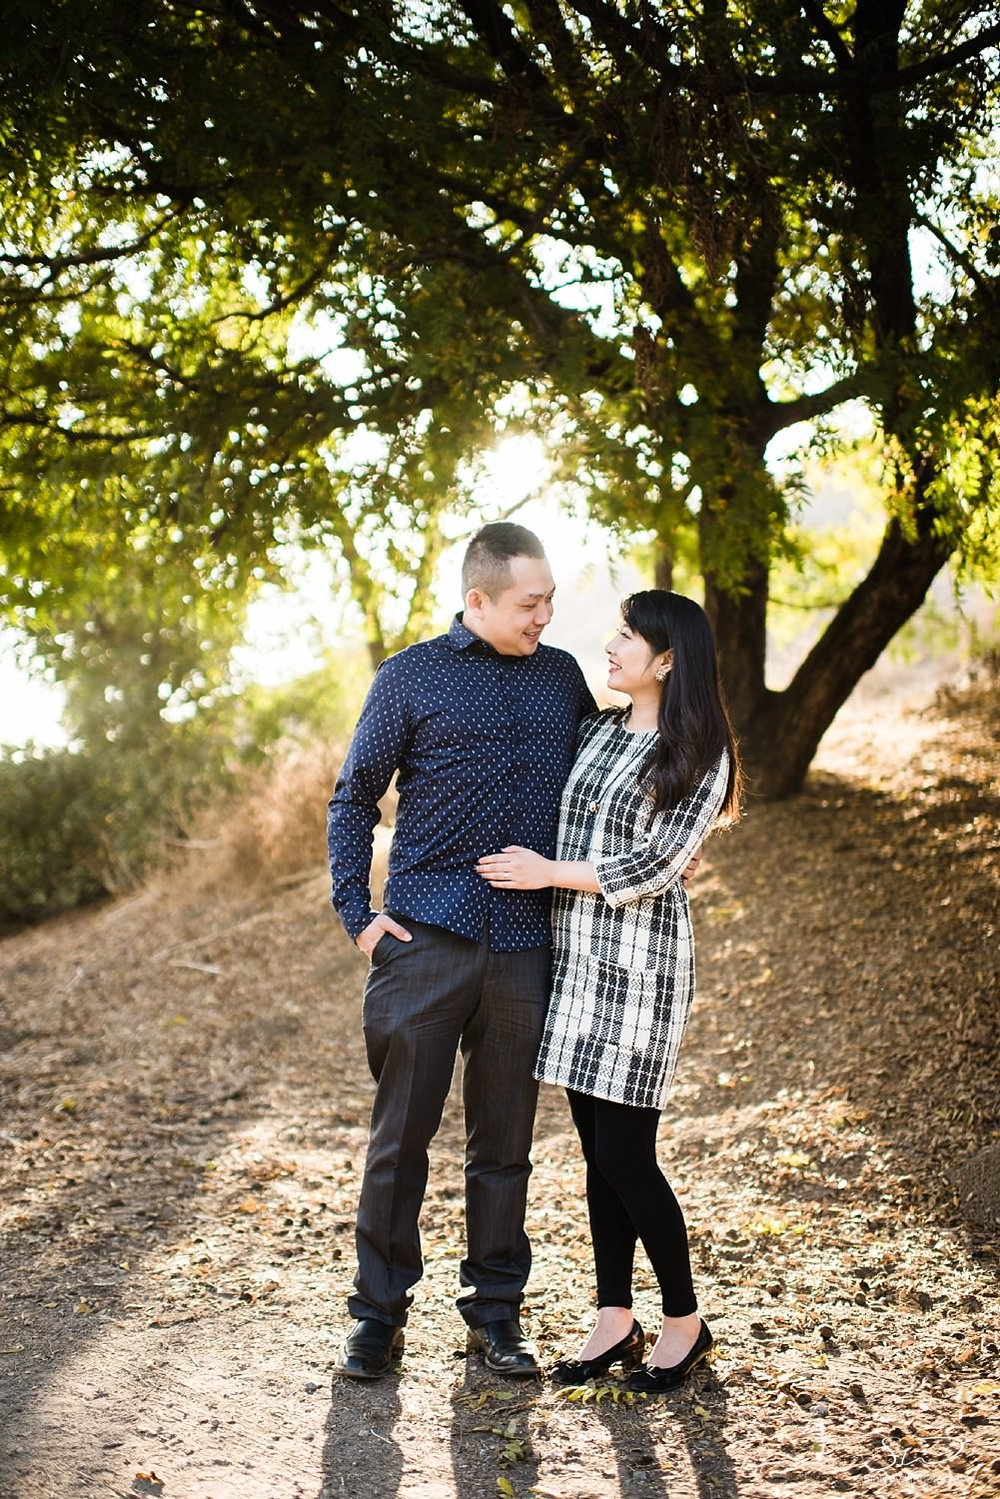 Couple smiling at each other | Ascot Hills Engagement – Portrait and Wedding Photography by Stanley Wu, based in Los Angeles